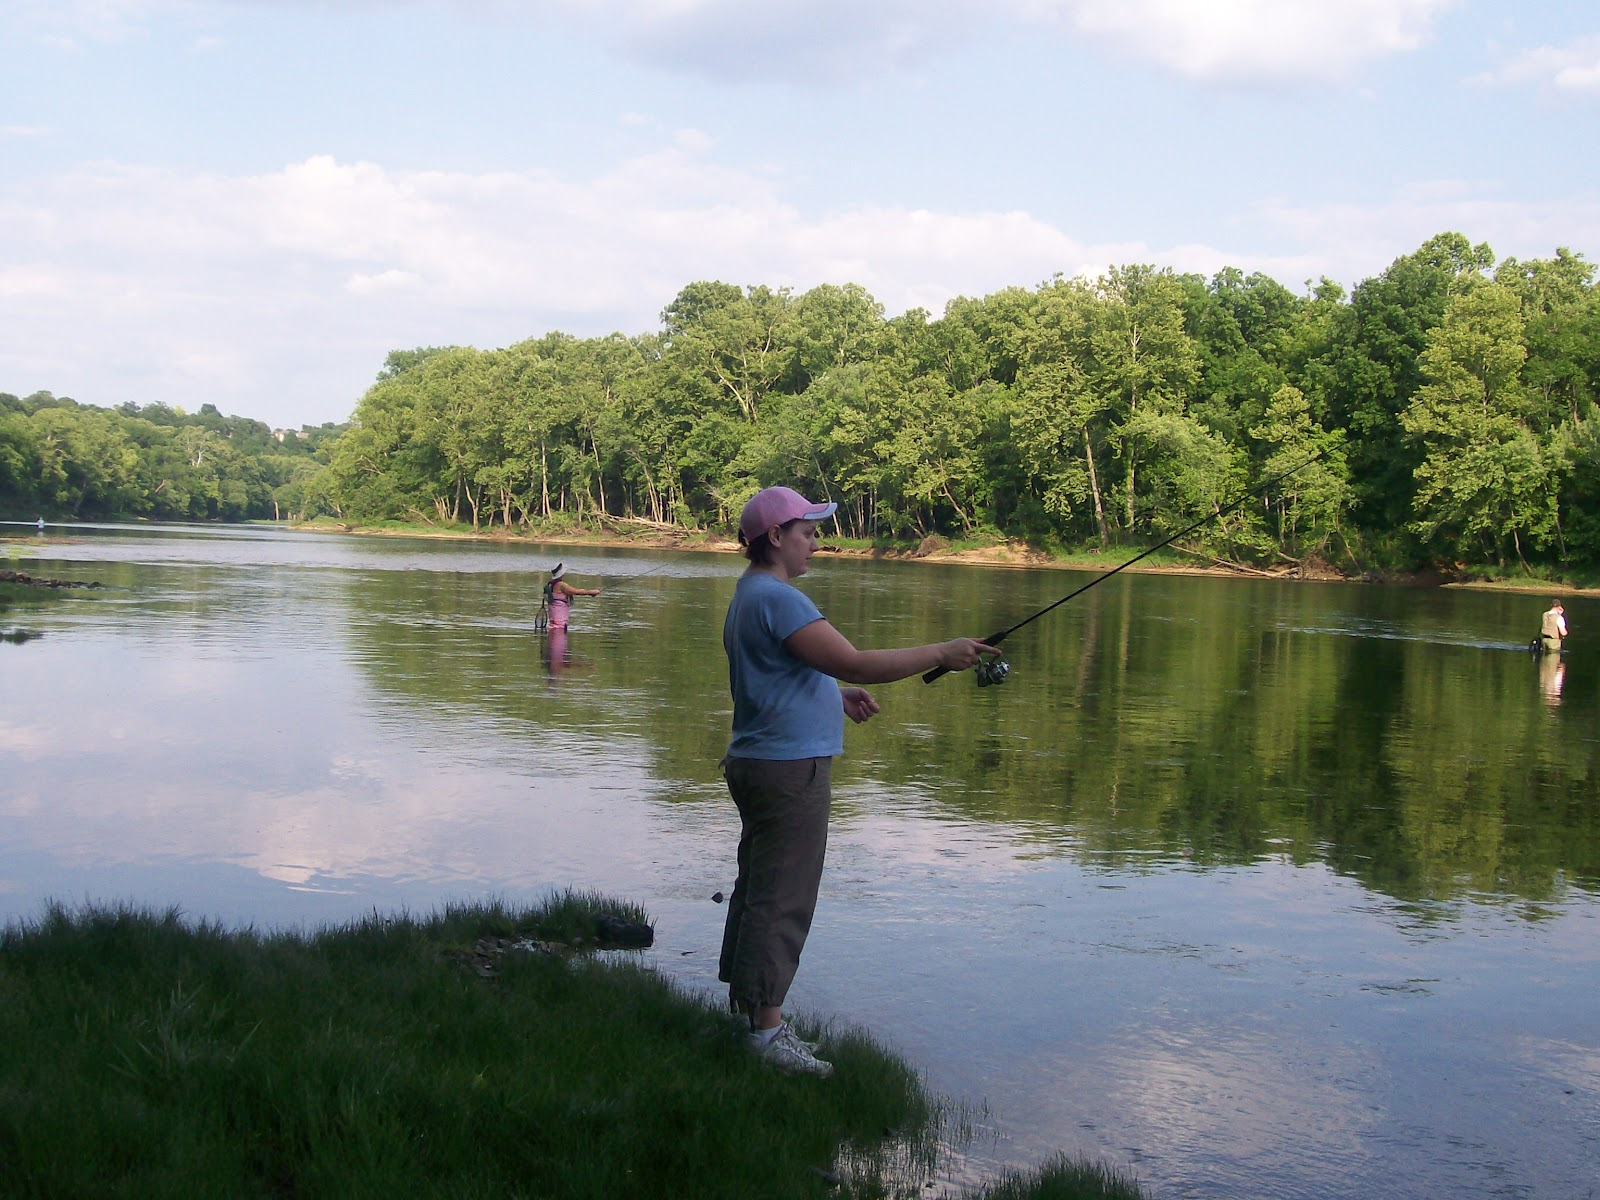 Intuitive value fly fishing on lake taneycomo for Lake taneycomo fishing